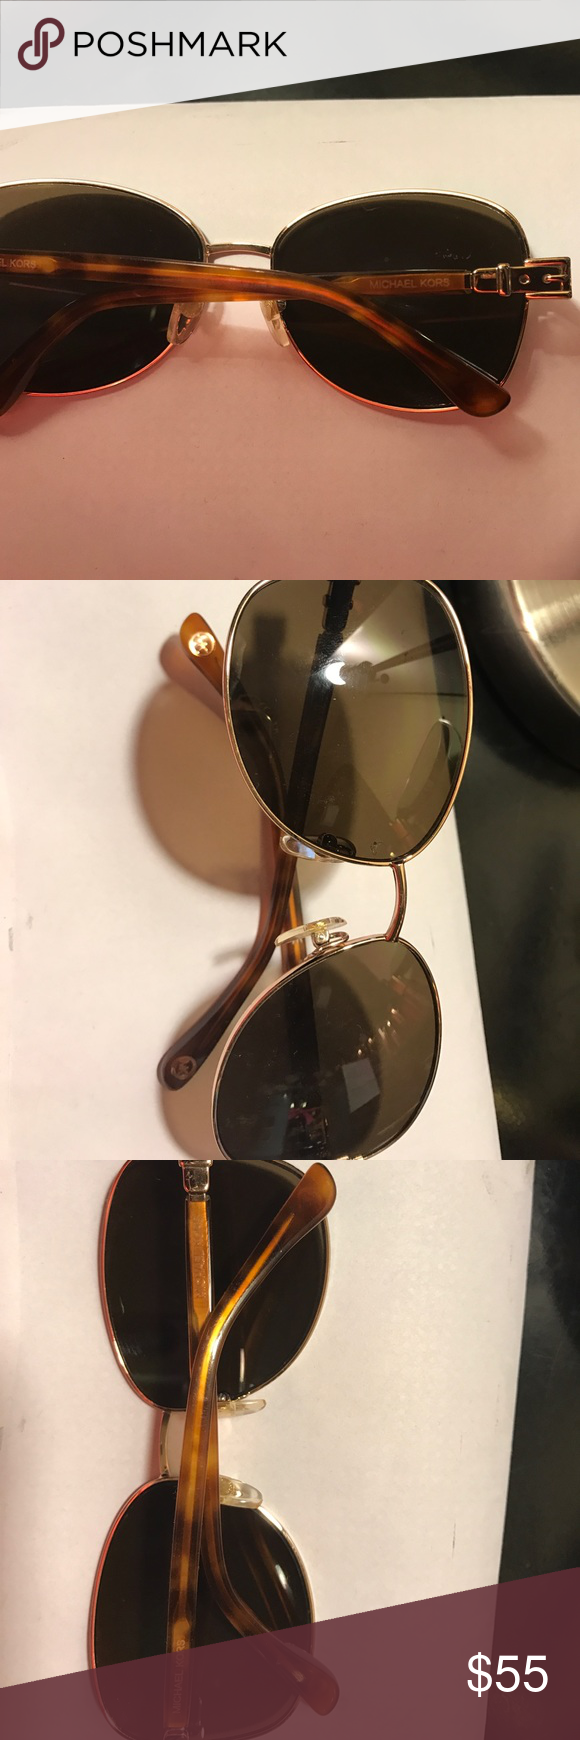 7b47b48e62dd4 Michael kors glasses Alissa ( M2487s)780 MICHAEL Michael Kors Accessories  Glasses